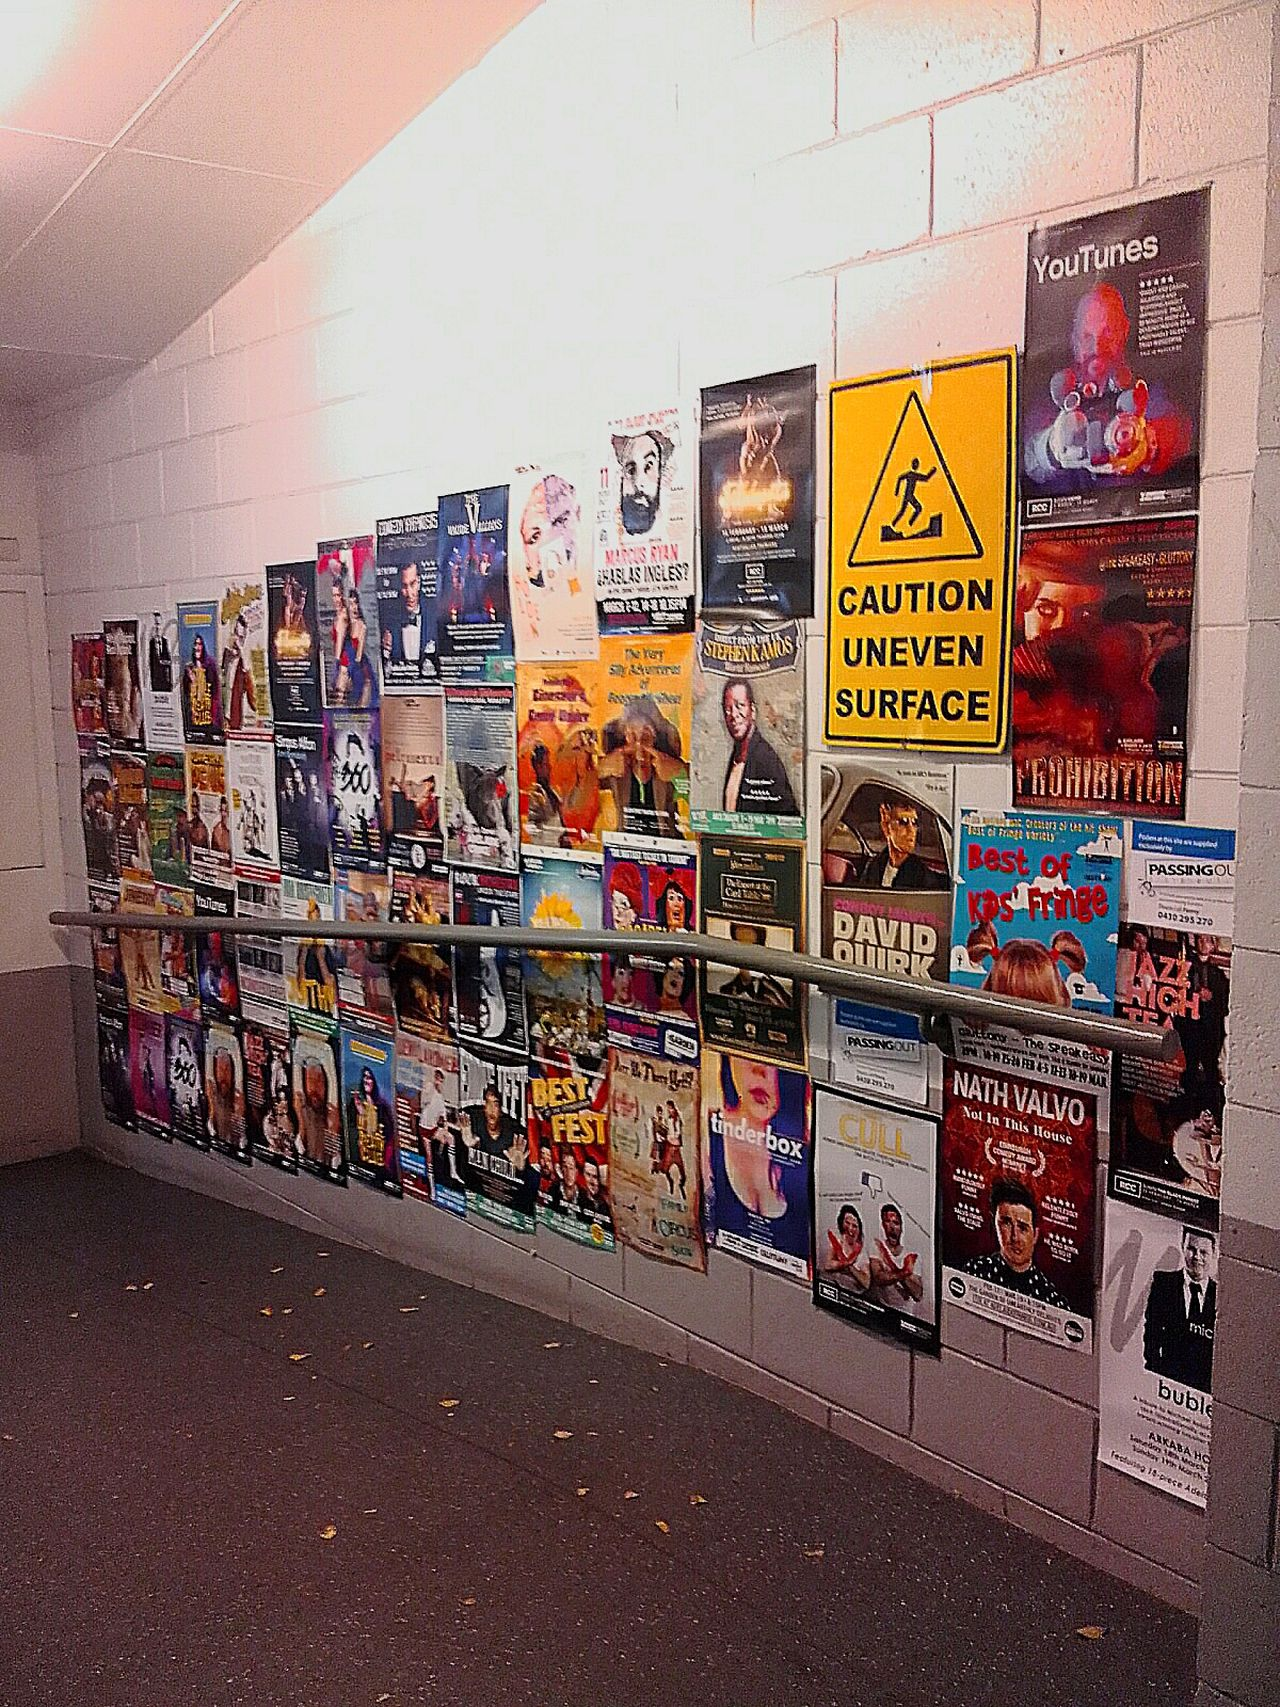 Posters Posterwall Notices Poster Wall Poster Poster Wall